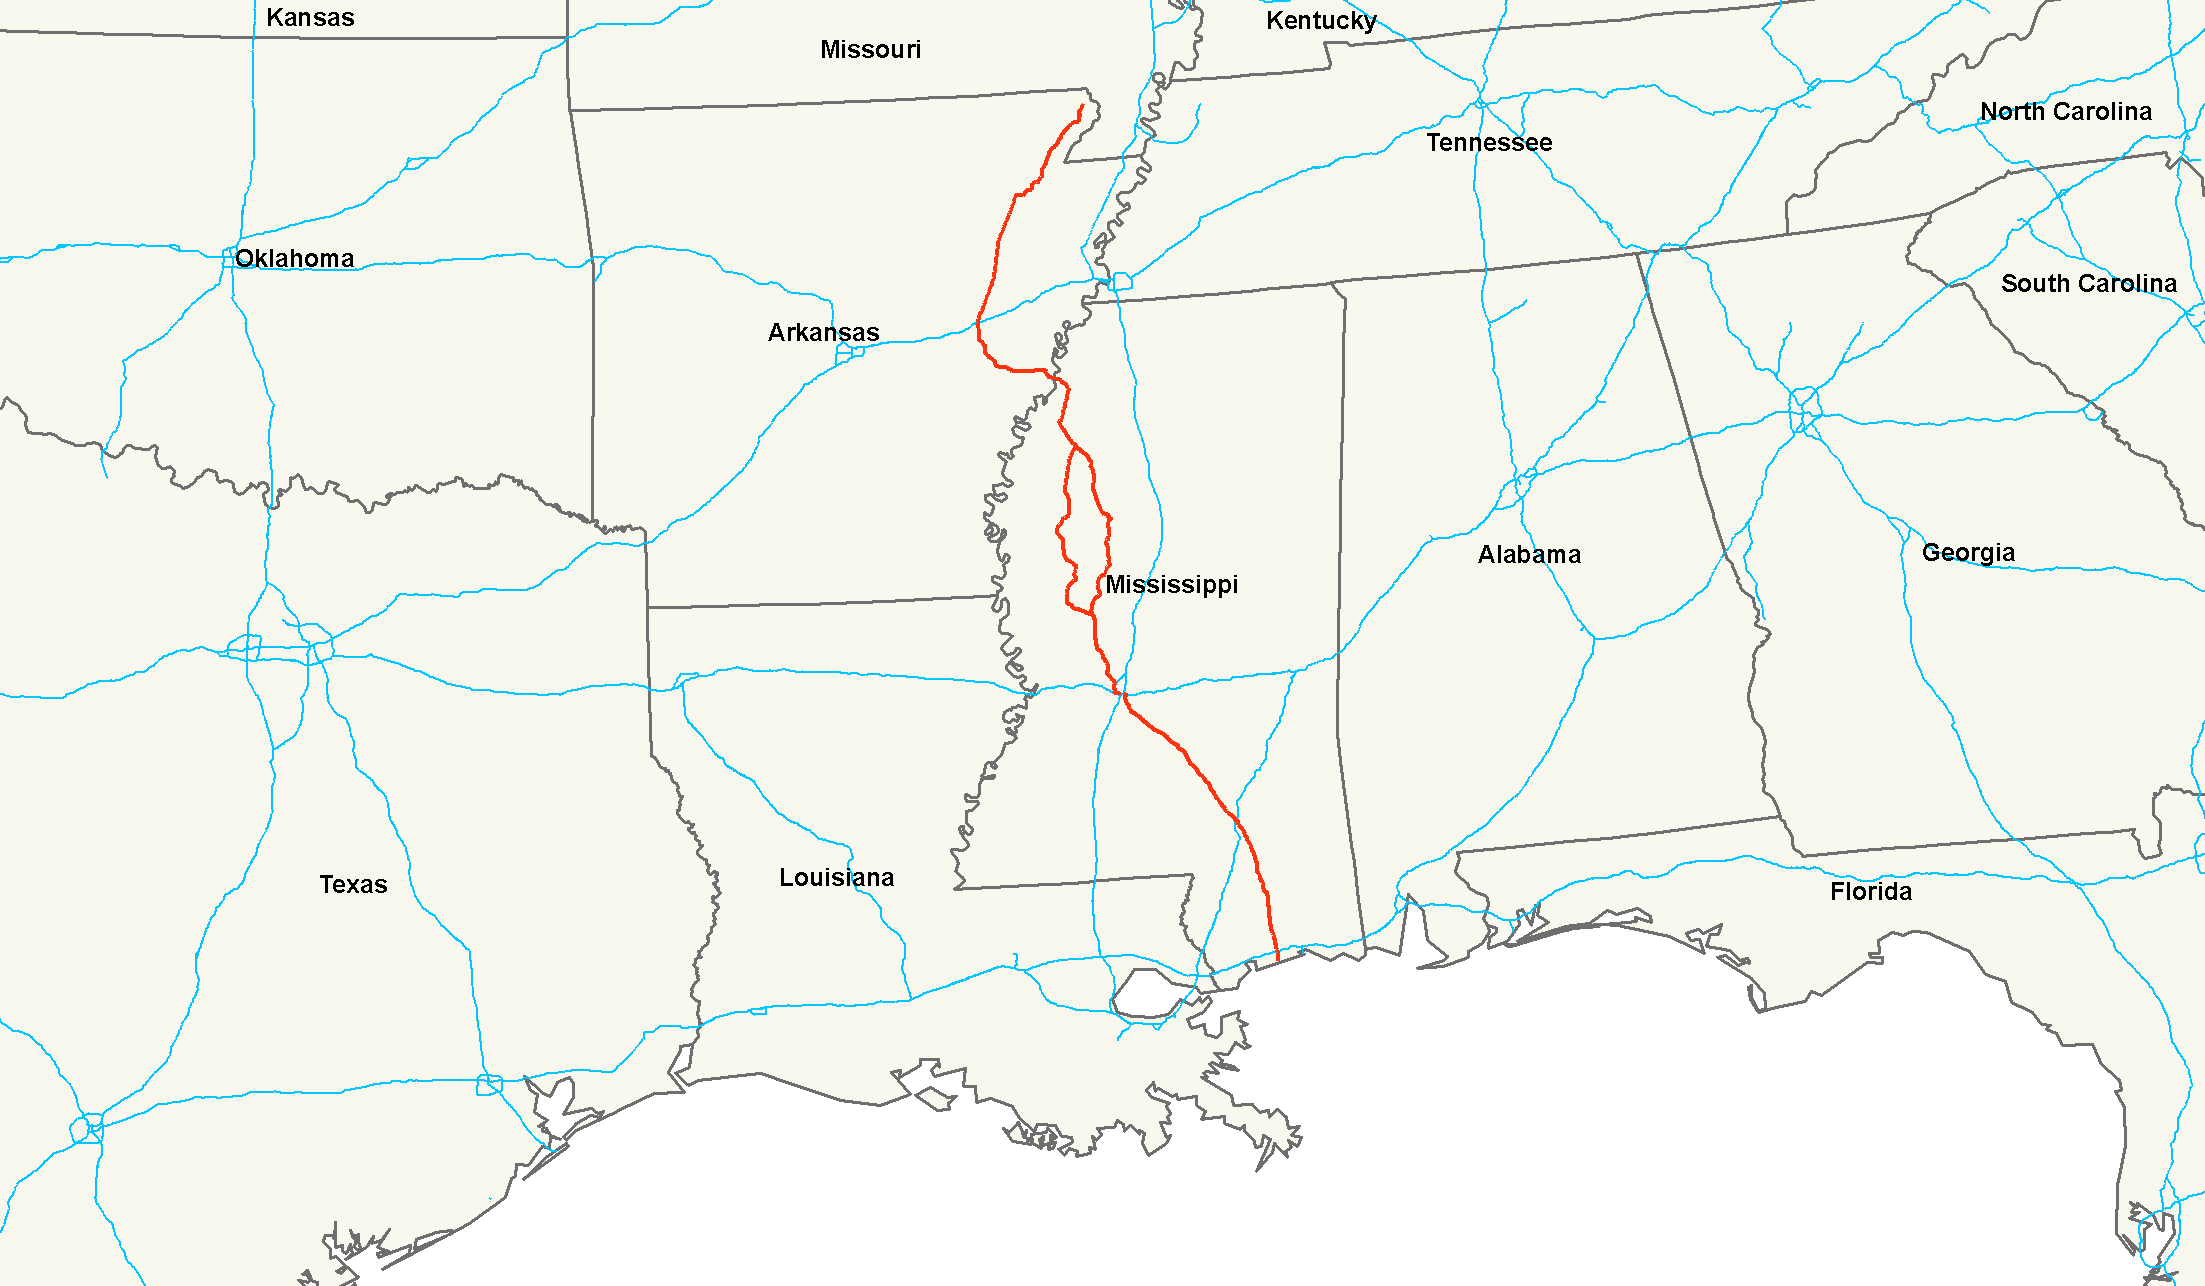 U.S. Route 49 - Wikipedia on bay saint louis ms map, ms city map, ms map towns highways, ms la map, nesbit ms map, mississippi map, morton ms map, ms state map, memphis ms map, clarksdale ms map, ms county map, ms st map, rand mcnally missouri state map, town of hempstead ny map, jayess ms map, brookhaven ms map, stoneville ms map, miss map, kentucky county map, long beach ms zoning map,